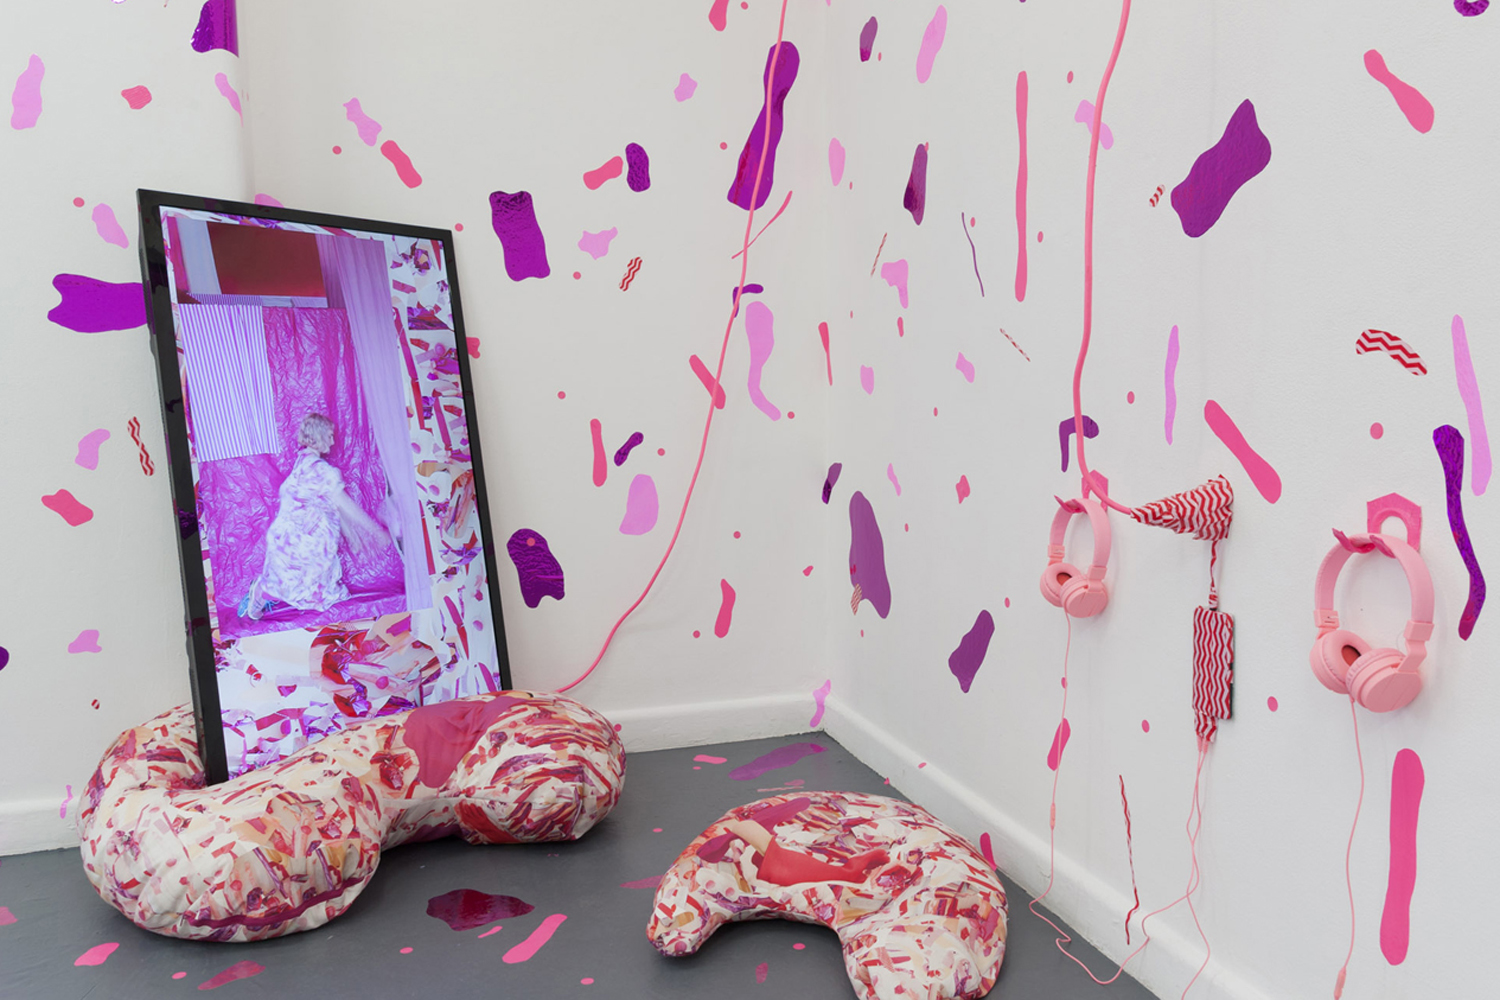 Emma Collard + Cherie Peele, Off Grid, installation, BLINDSIDE